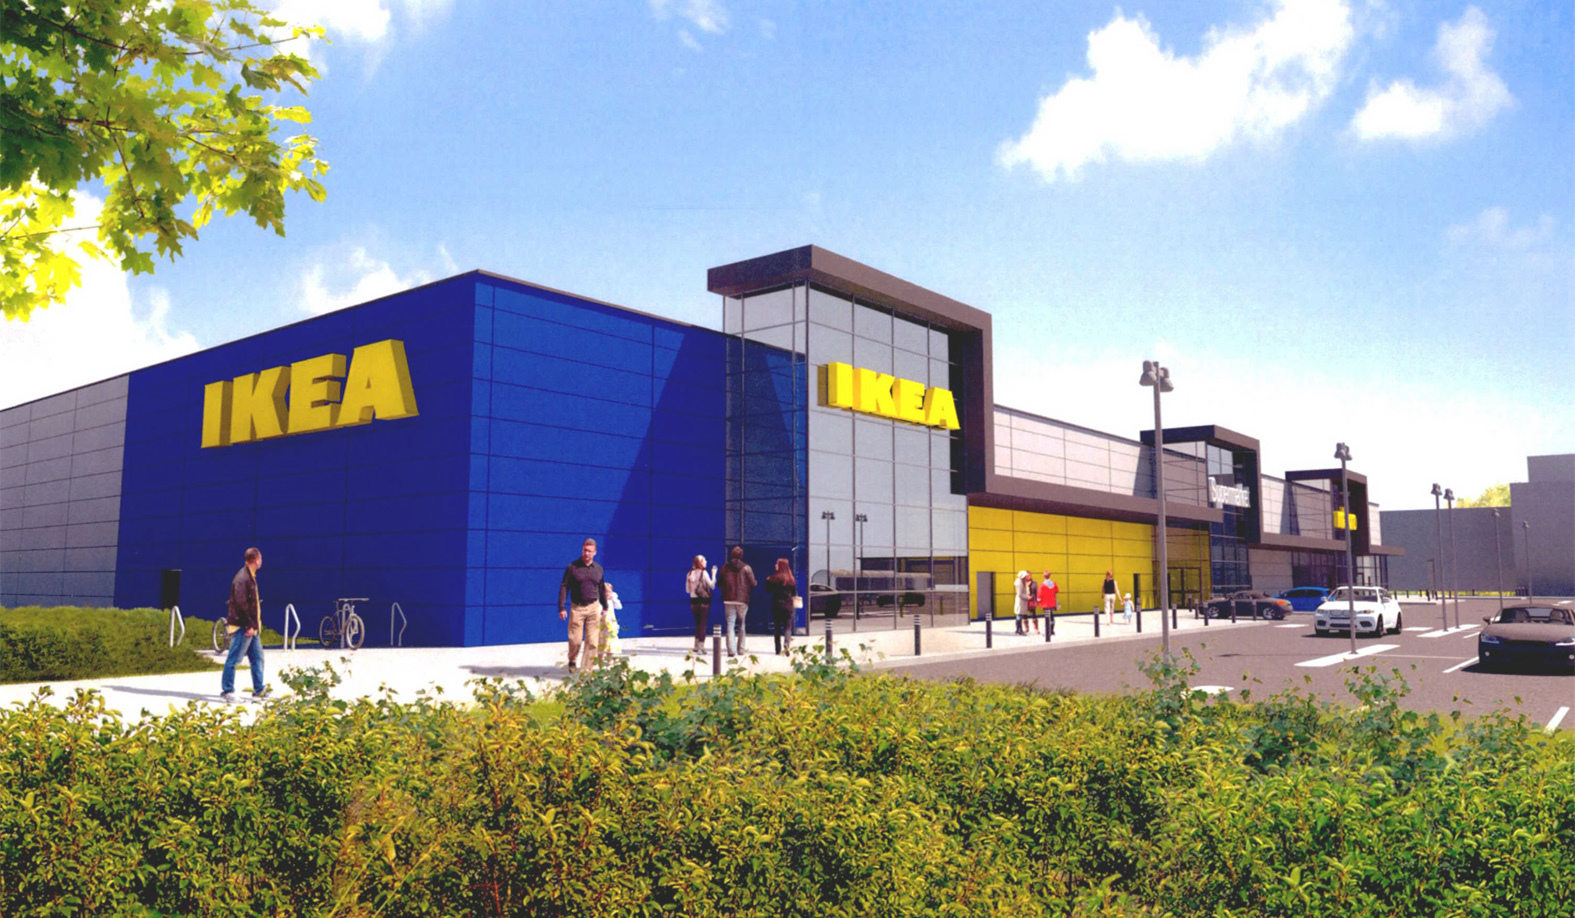 An artist's impression of how the new IKEA store off Wellington Road could look.